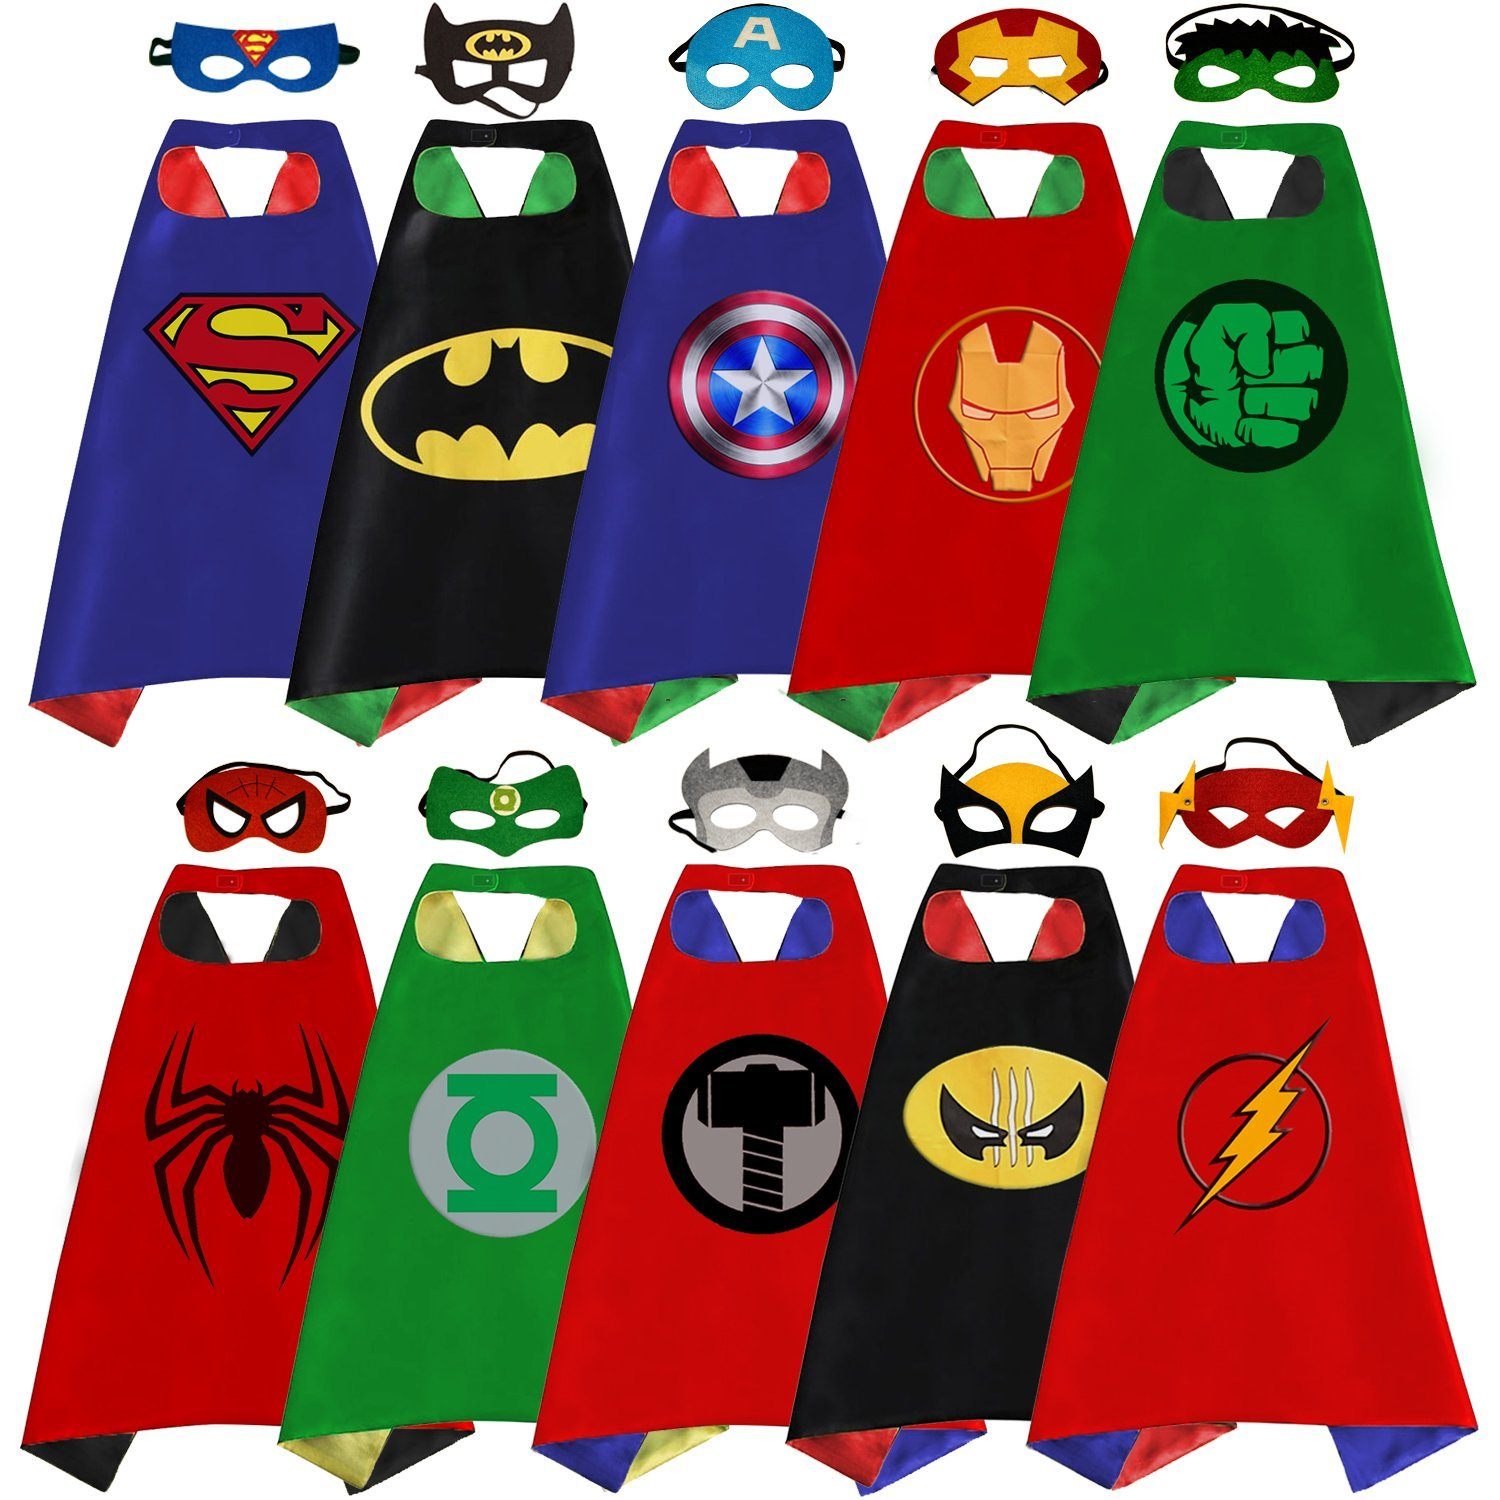 Superhero Capes, Masks, and Bracelets for Kids by McFlony – 5 Reversible Capes, 10 Felt Masks, and 5 Superheroes Bracelets